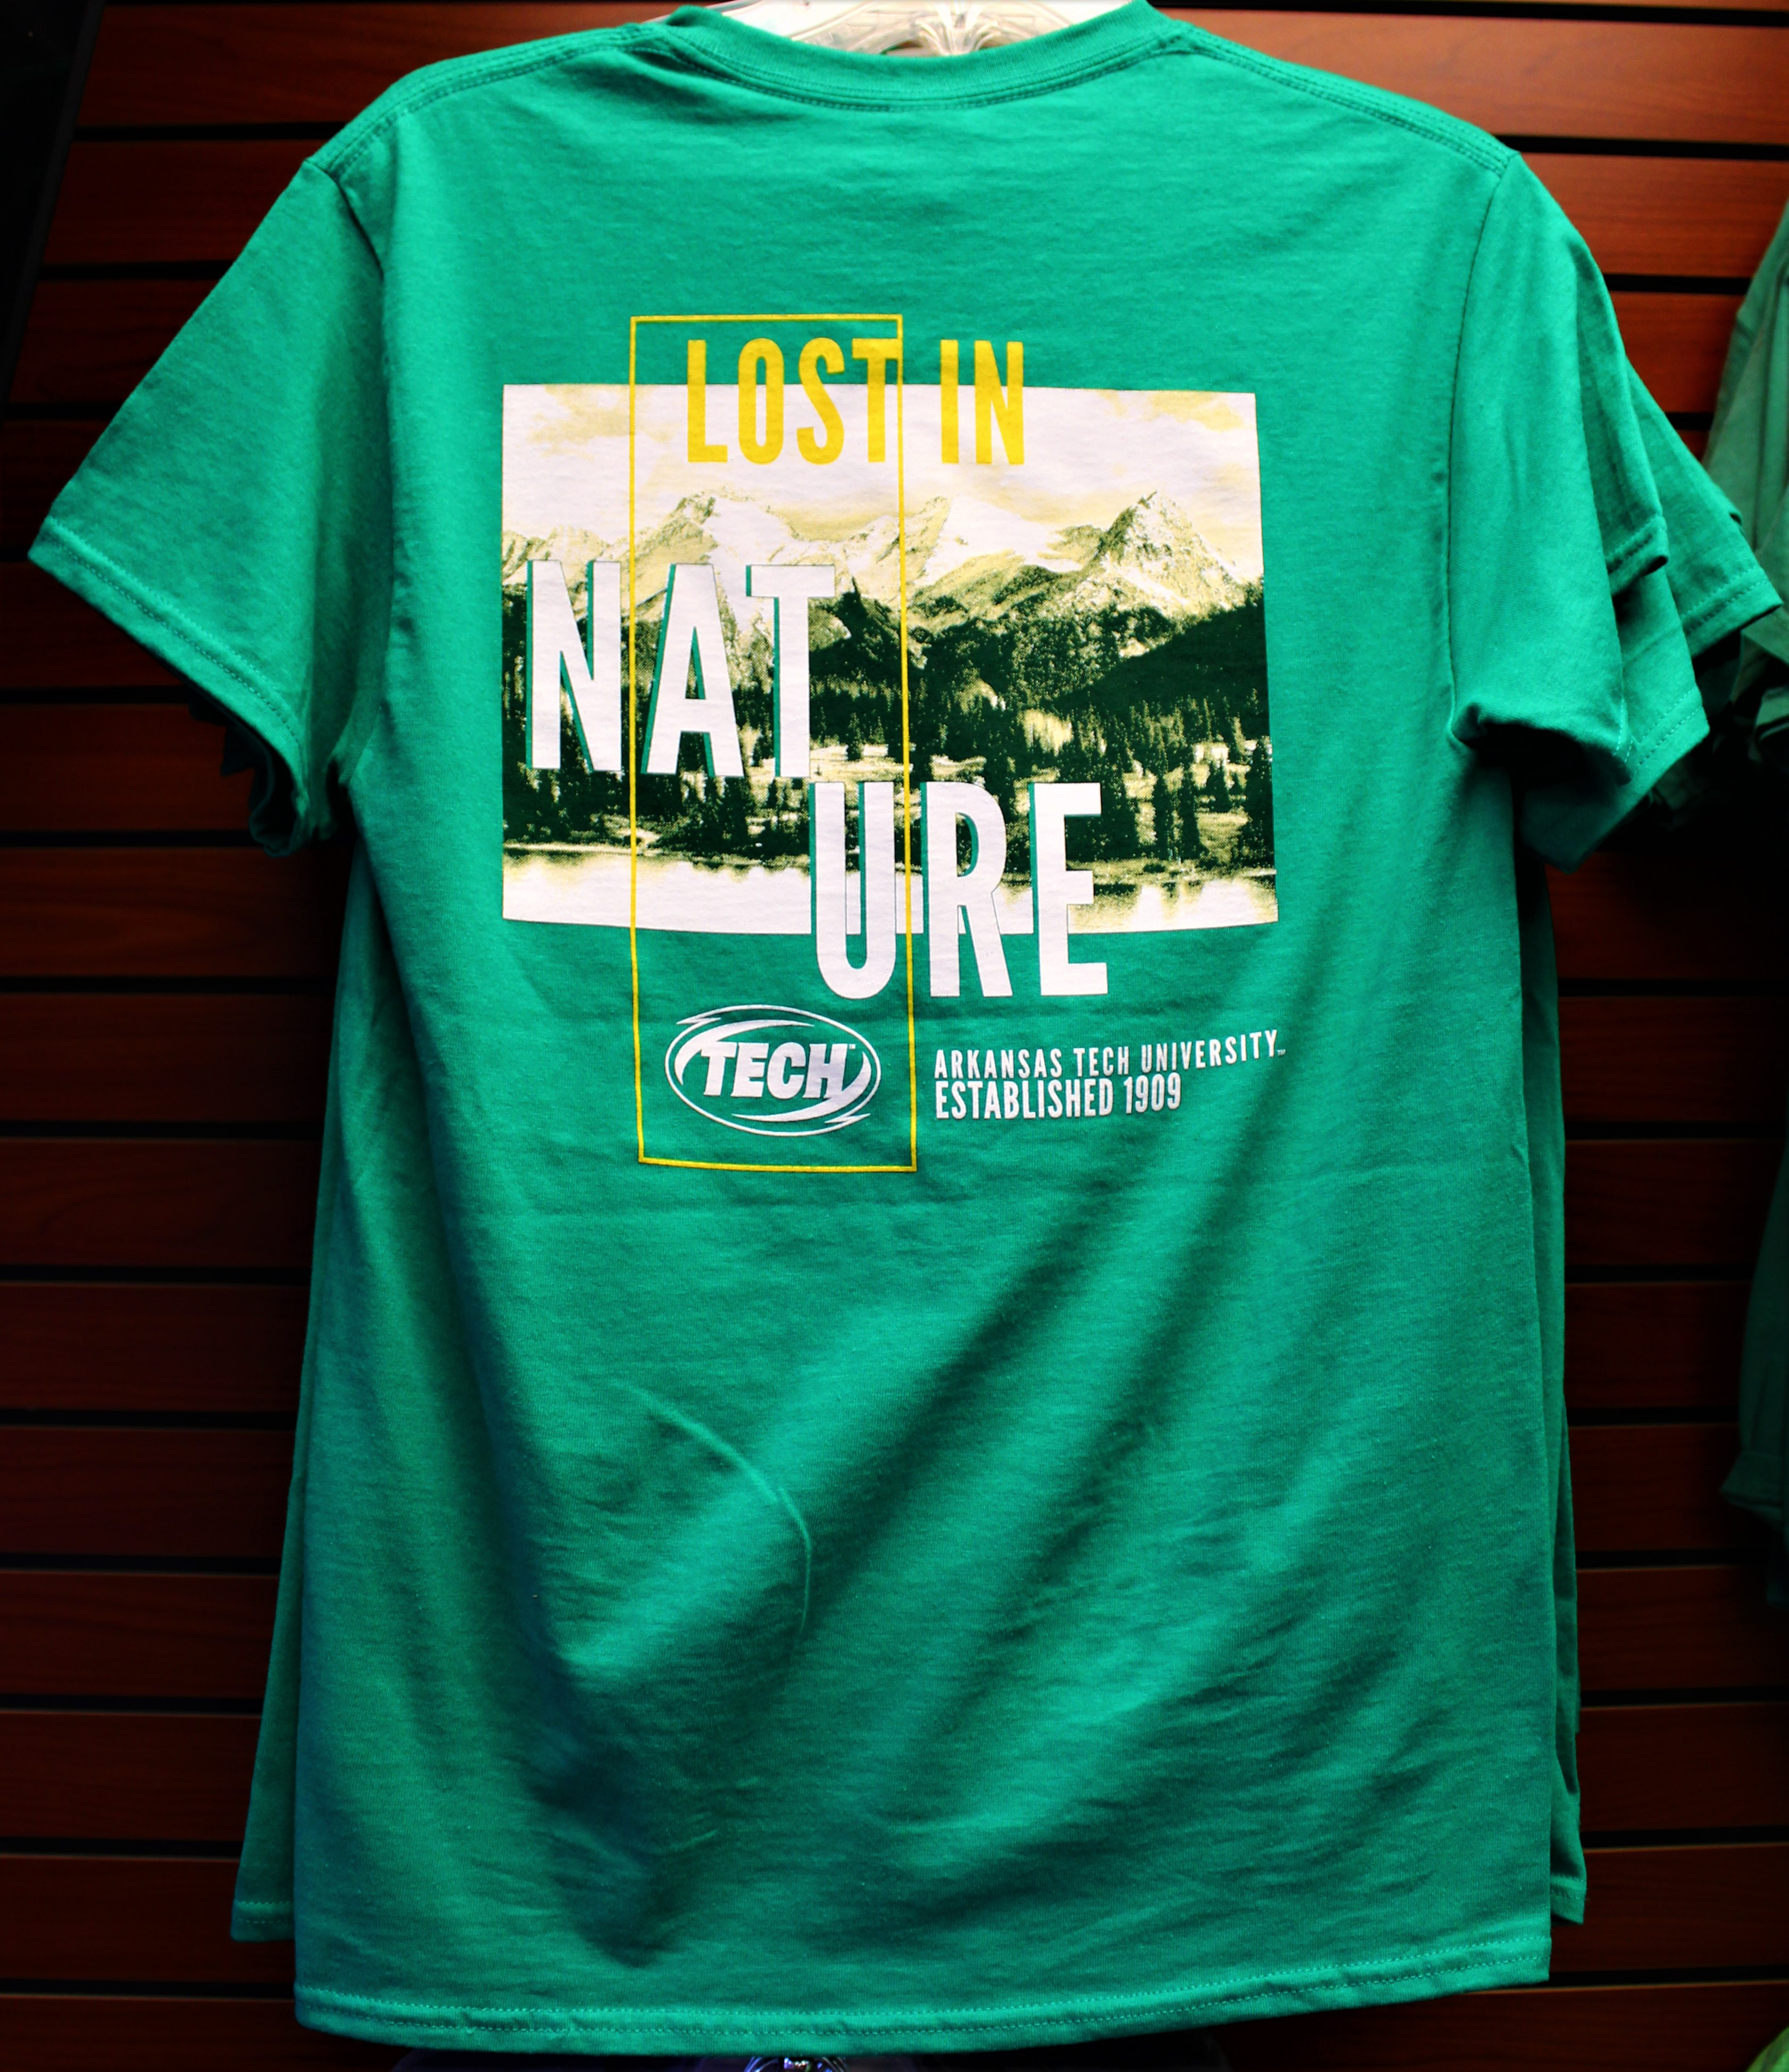 LOST IN NATURE SS T-SHIRT